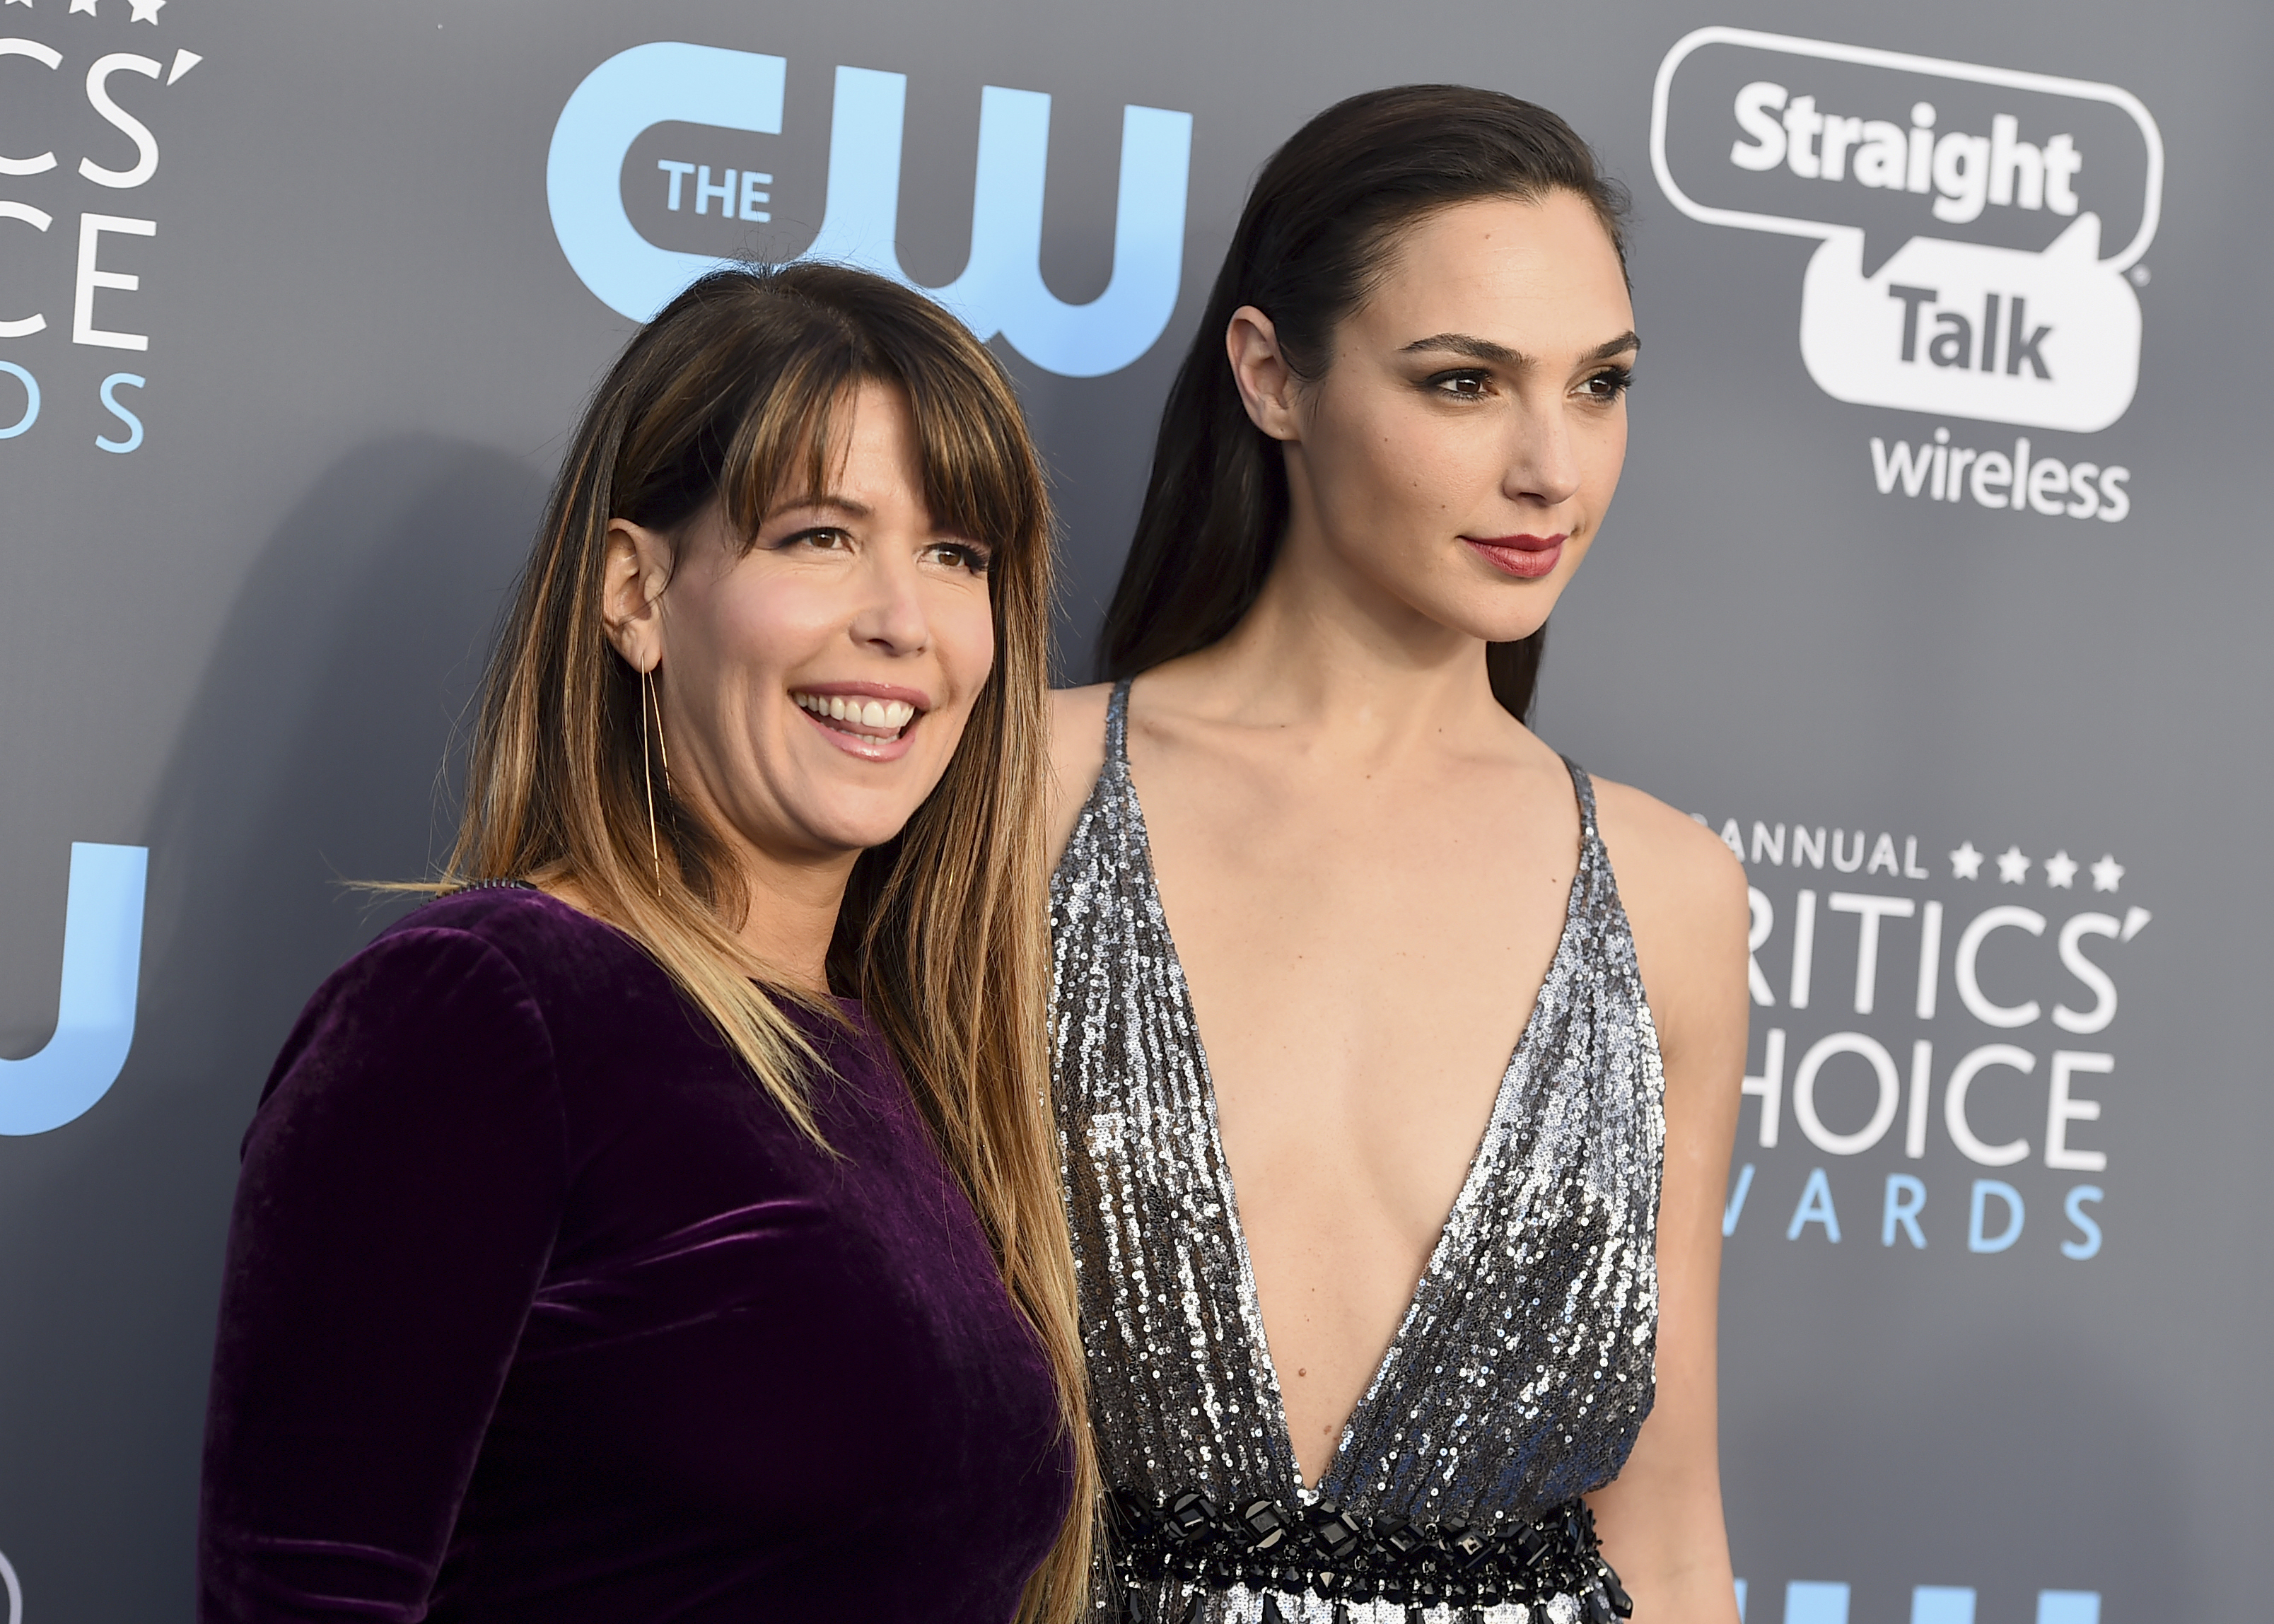 <div class='meta'><div class='origin-logo' data-origin='AP'></div><span class='caption-text' data-credit='Jordan Strauss/Invision/AP'>Patty Jenkins, left, and Gal Gadot arrive at the 23rd annual Critics' Choice Awards at the Barker Hangar on Thursday, Jan. 11, 2018, in Santa Monica, Calif.</span></div>